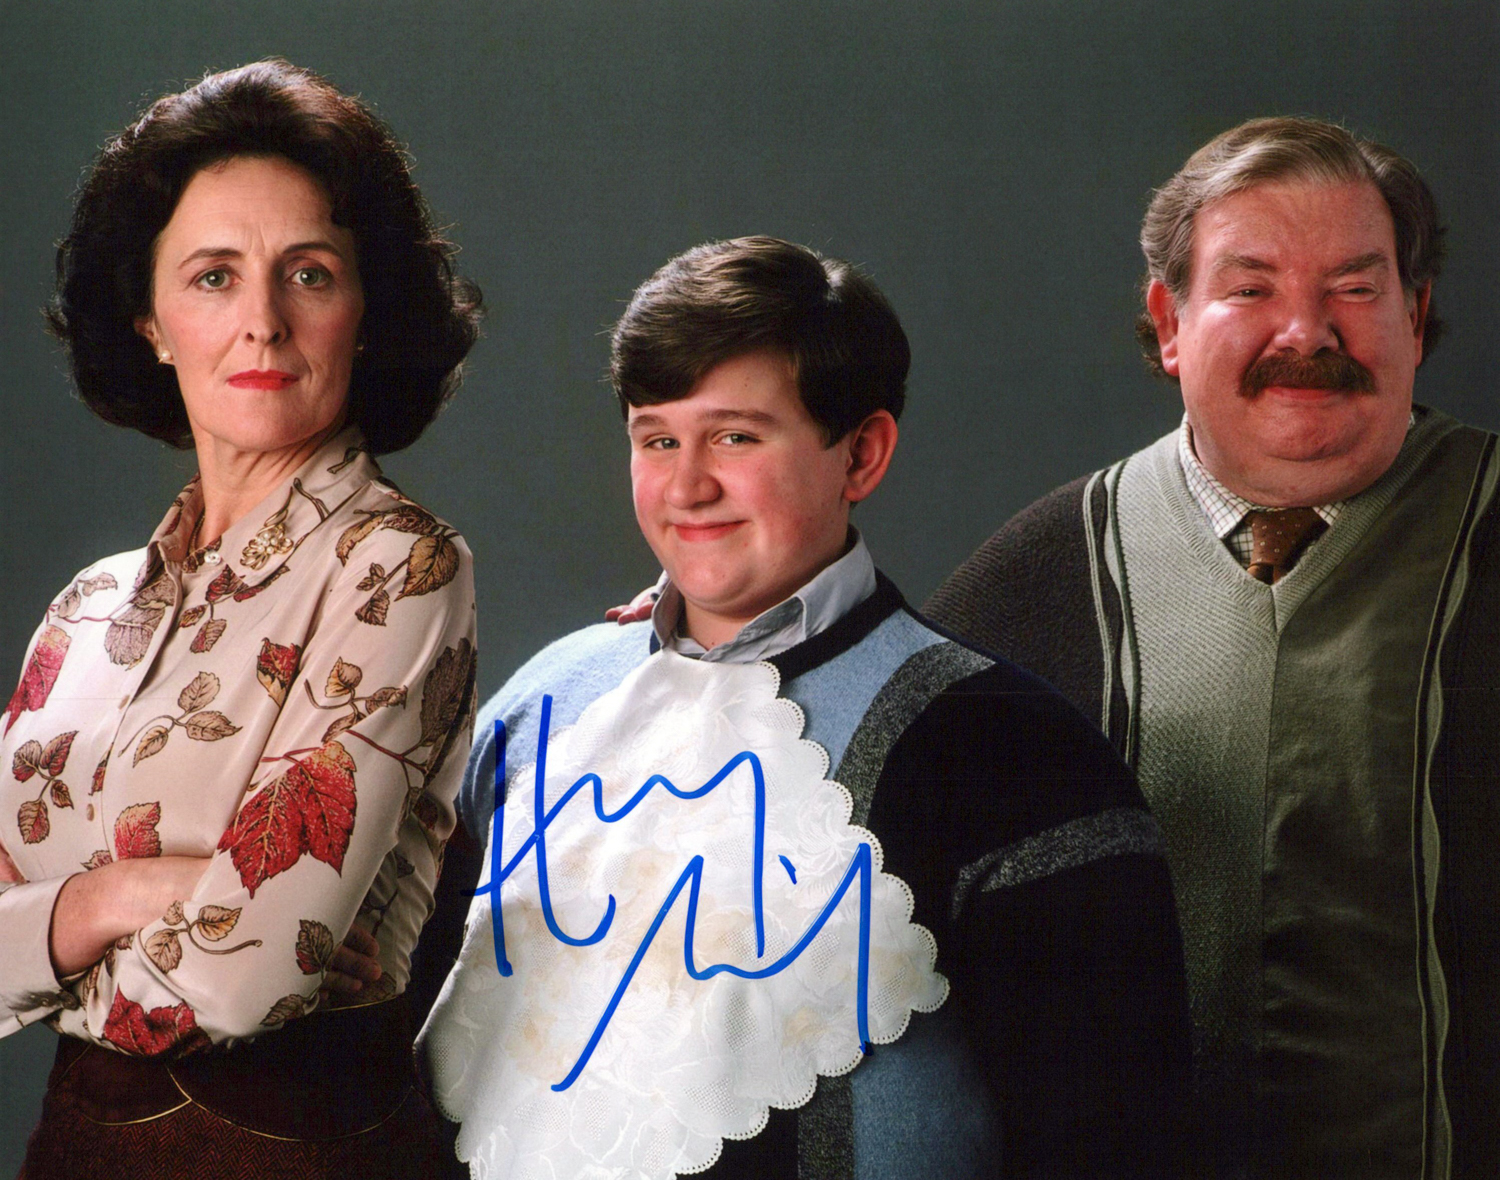 Harry Melling Original Autogramm auf Foto 20x25cm - Harry Potter